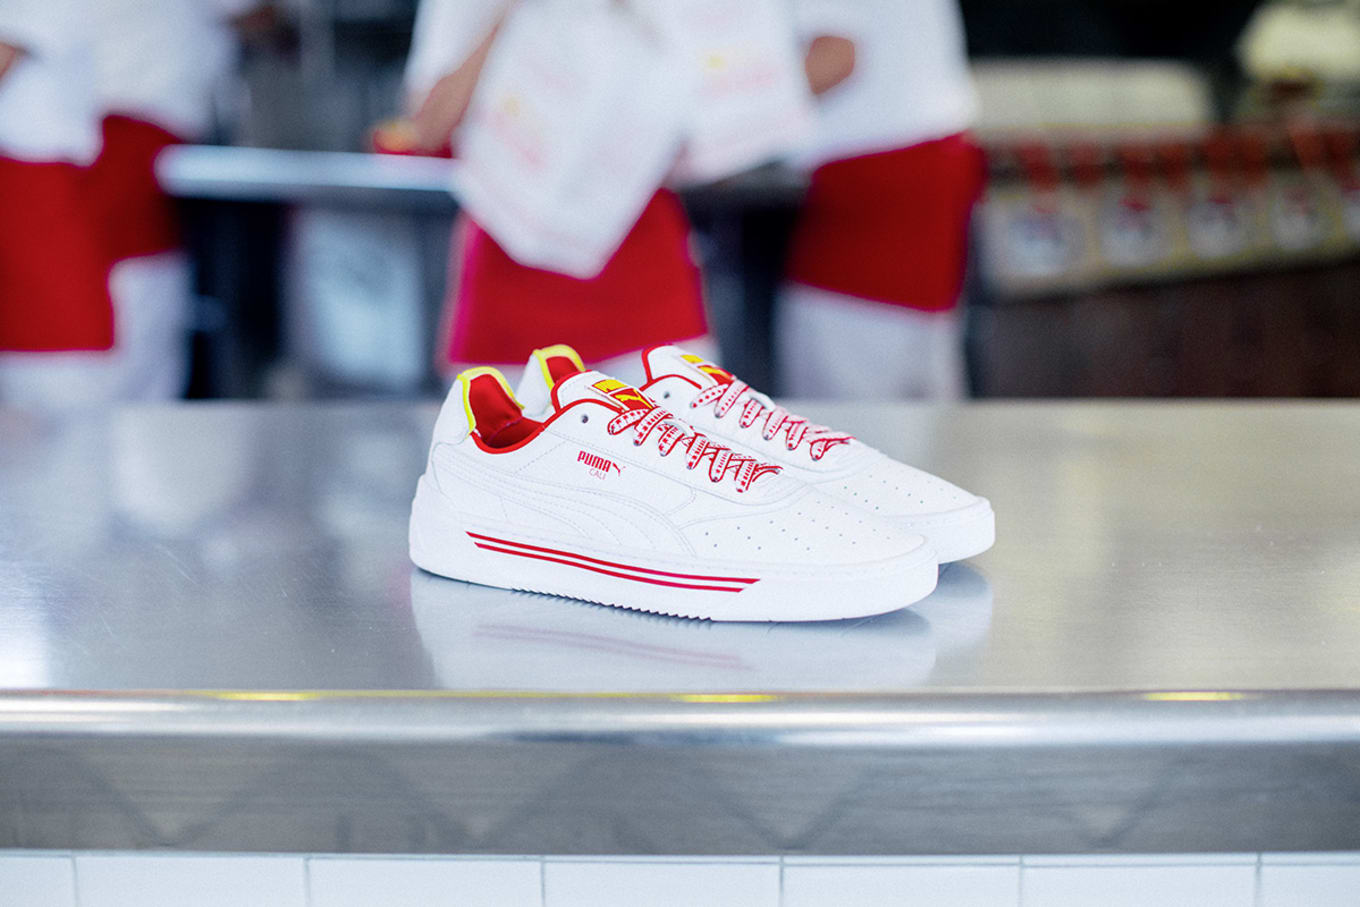 55ca7c37a00 In-N-Out Has Sued Puma Over Its Drive Thru Sneakers